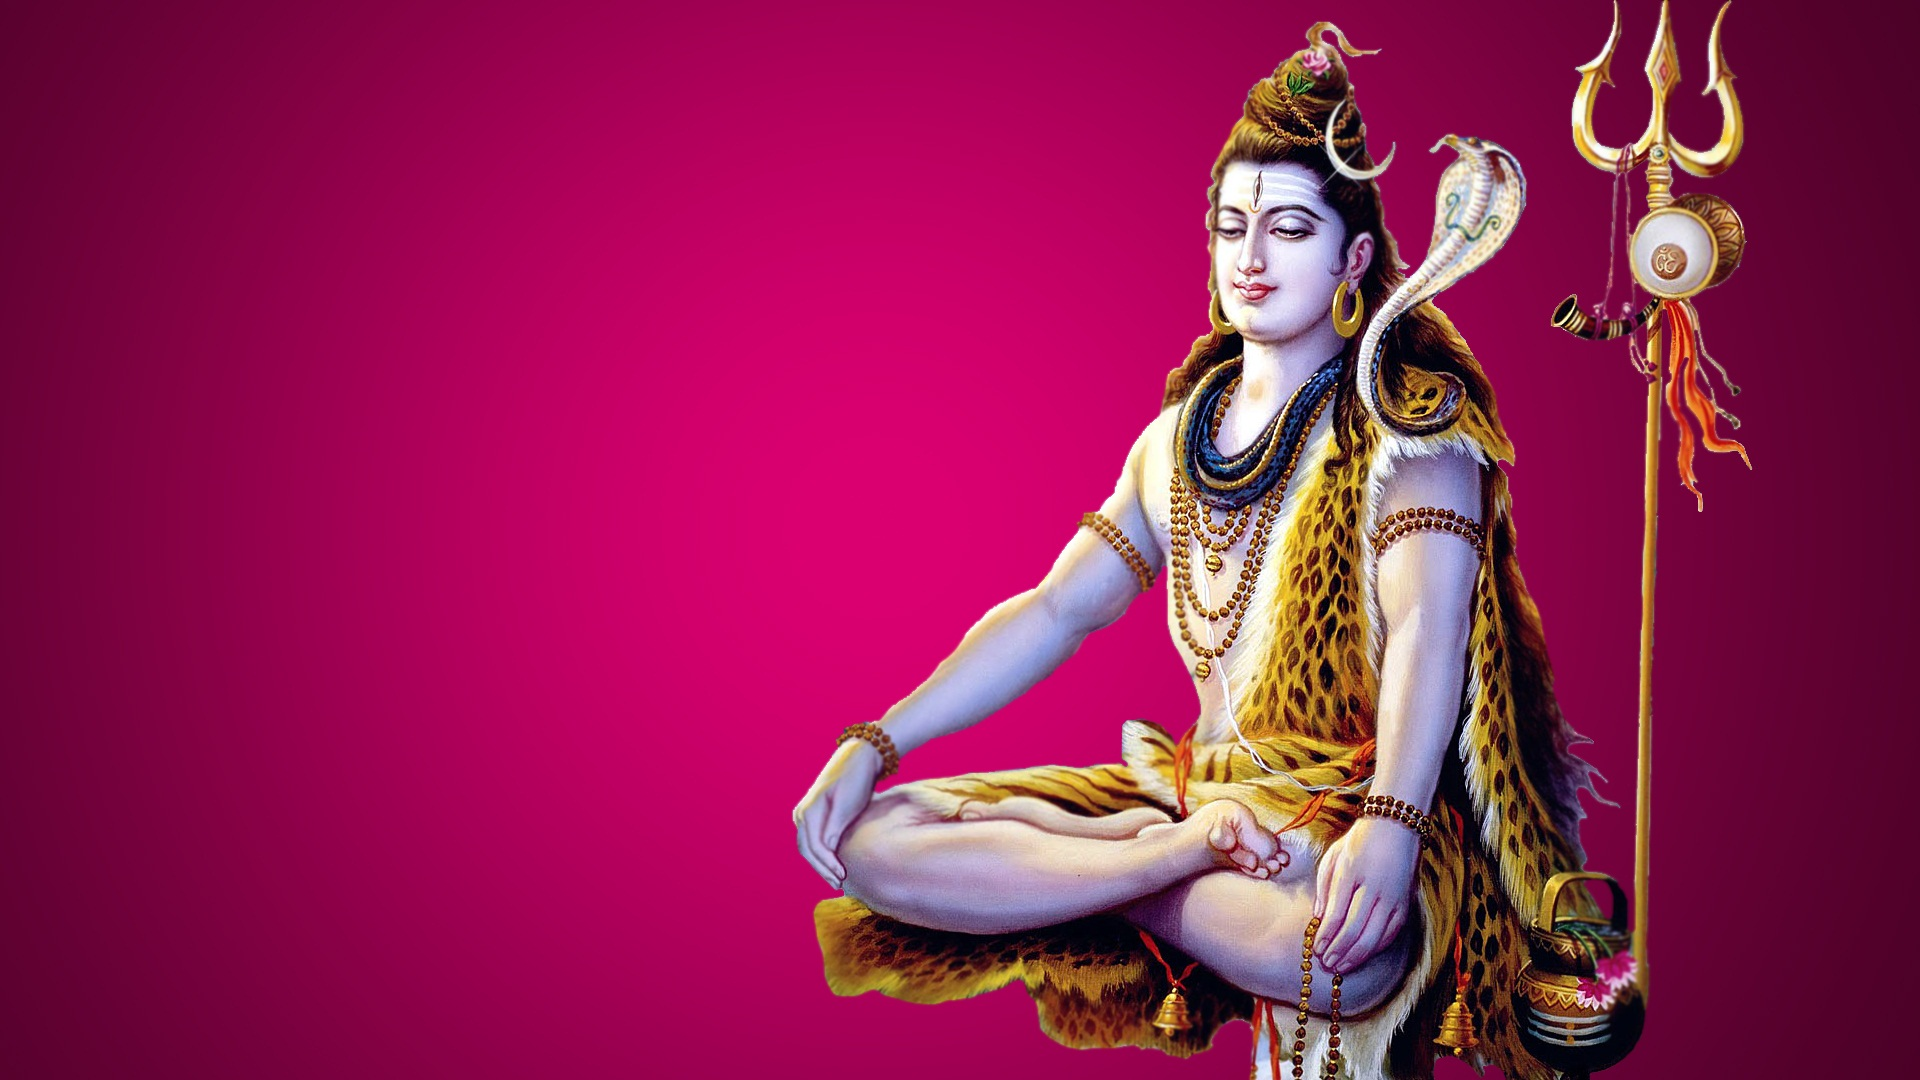 My Name 3d Live Wallpaper For Pc Download Full Hd Shiv Ji Wallpapers Gallery